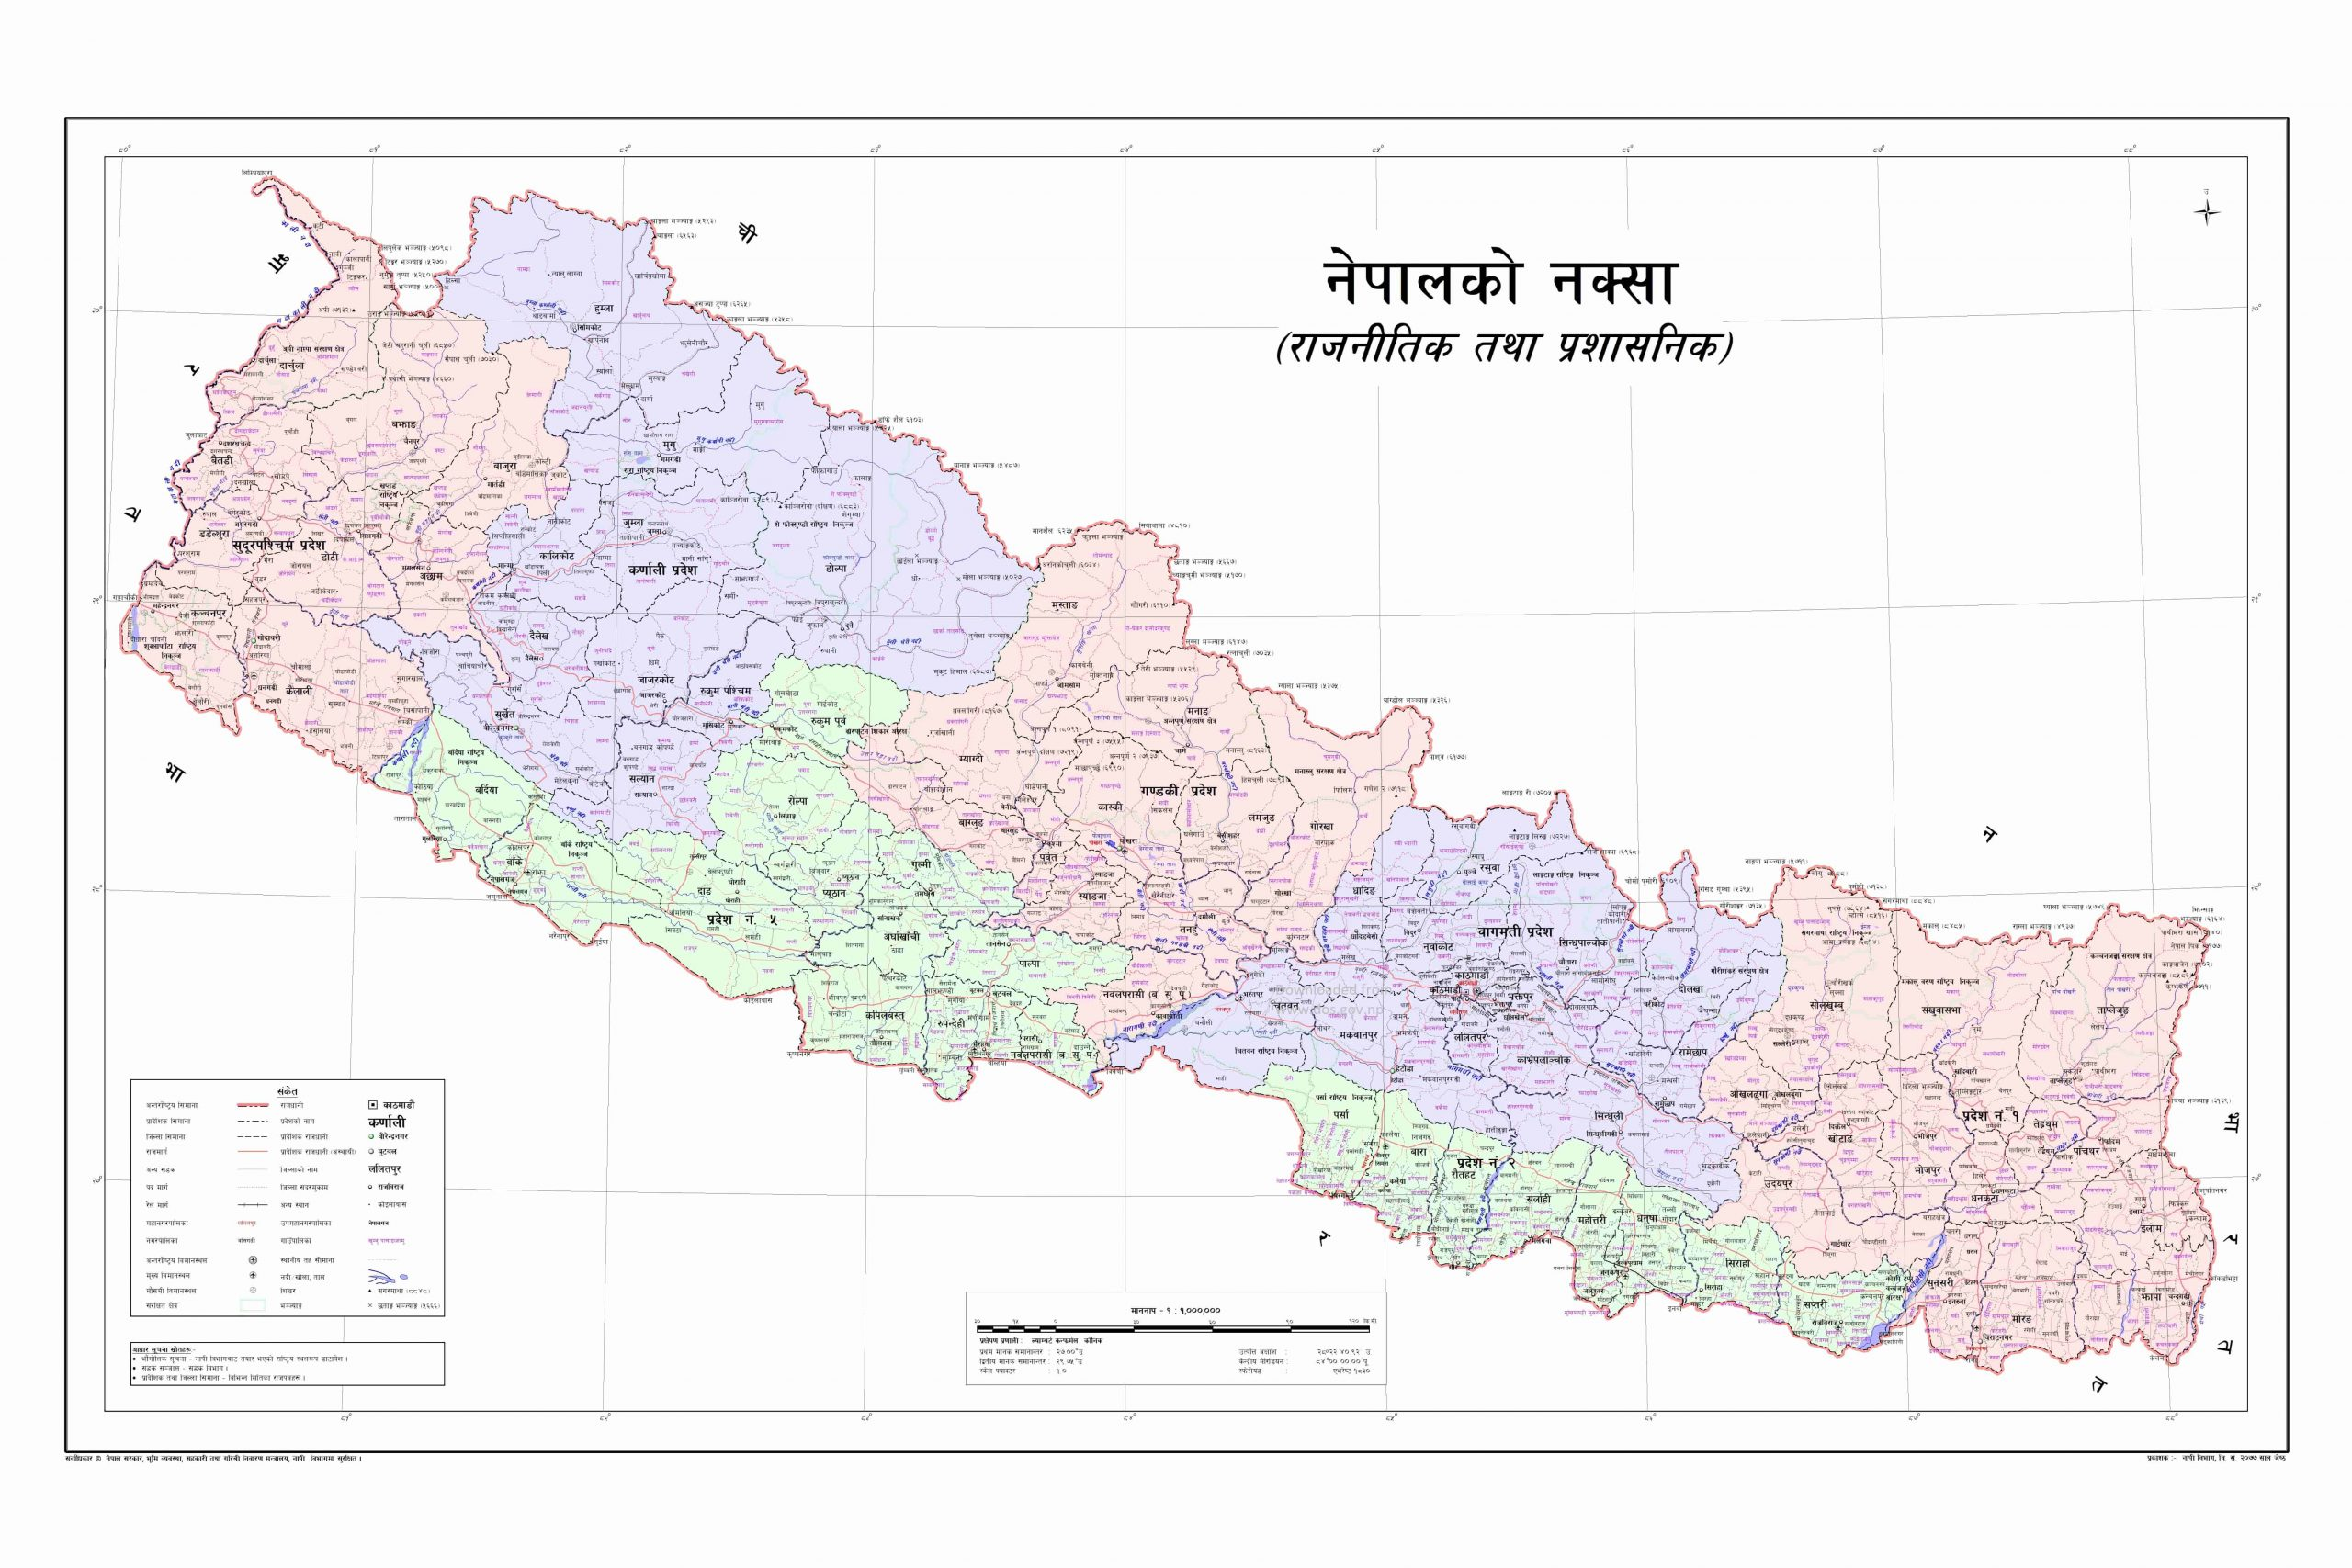 New Map of Nepal with Lipulek, Limpiadhura and Kalapani